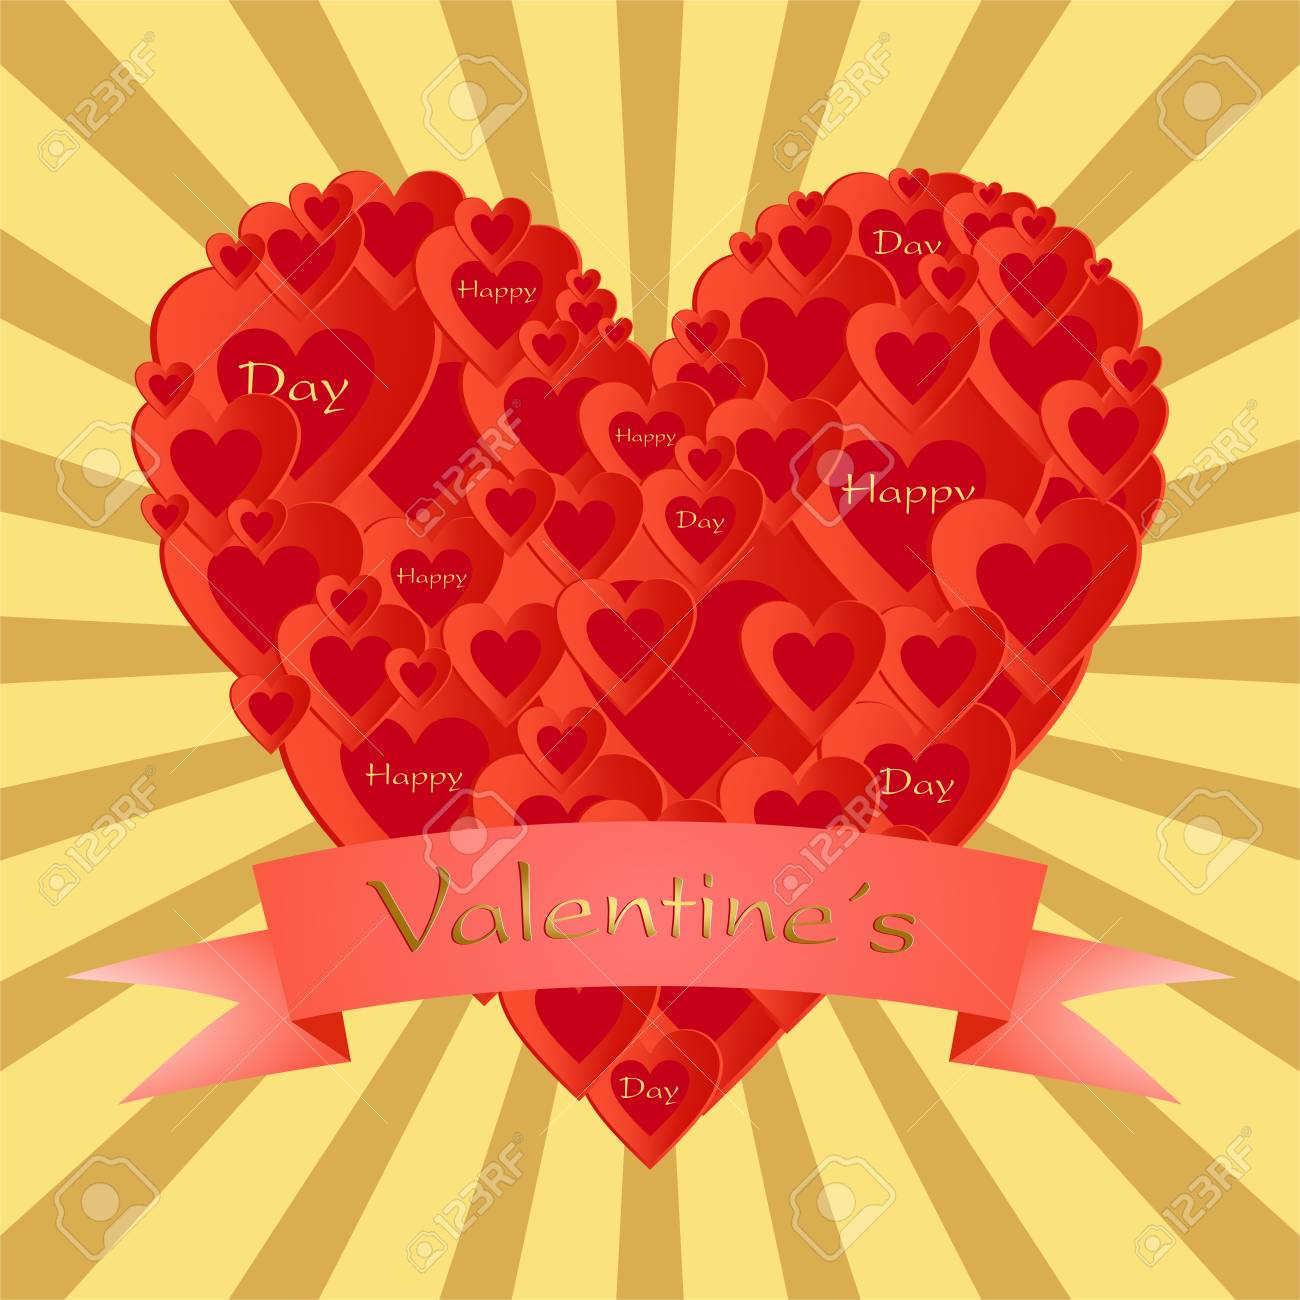 Gold Valentine Greeting With A Heart Composed Of Small Red Hearts